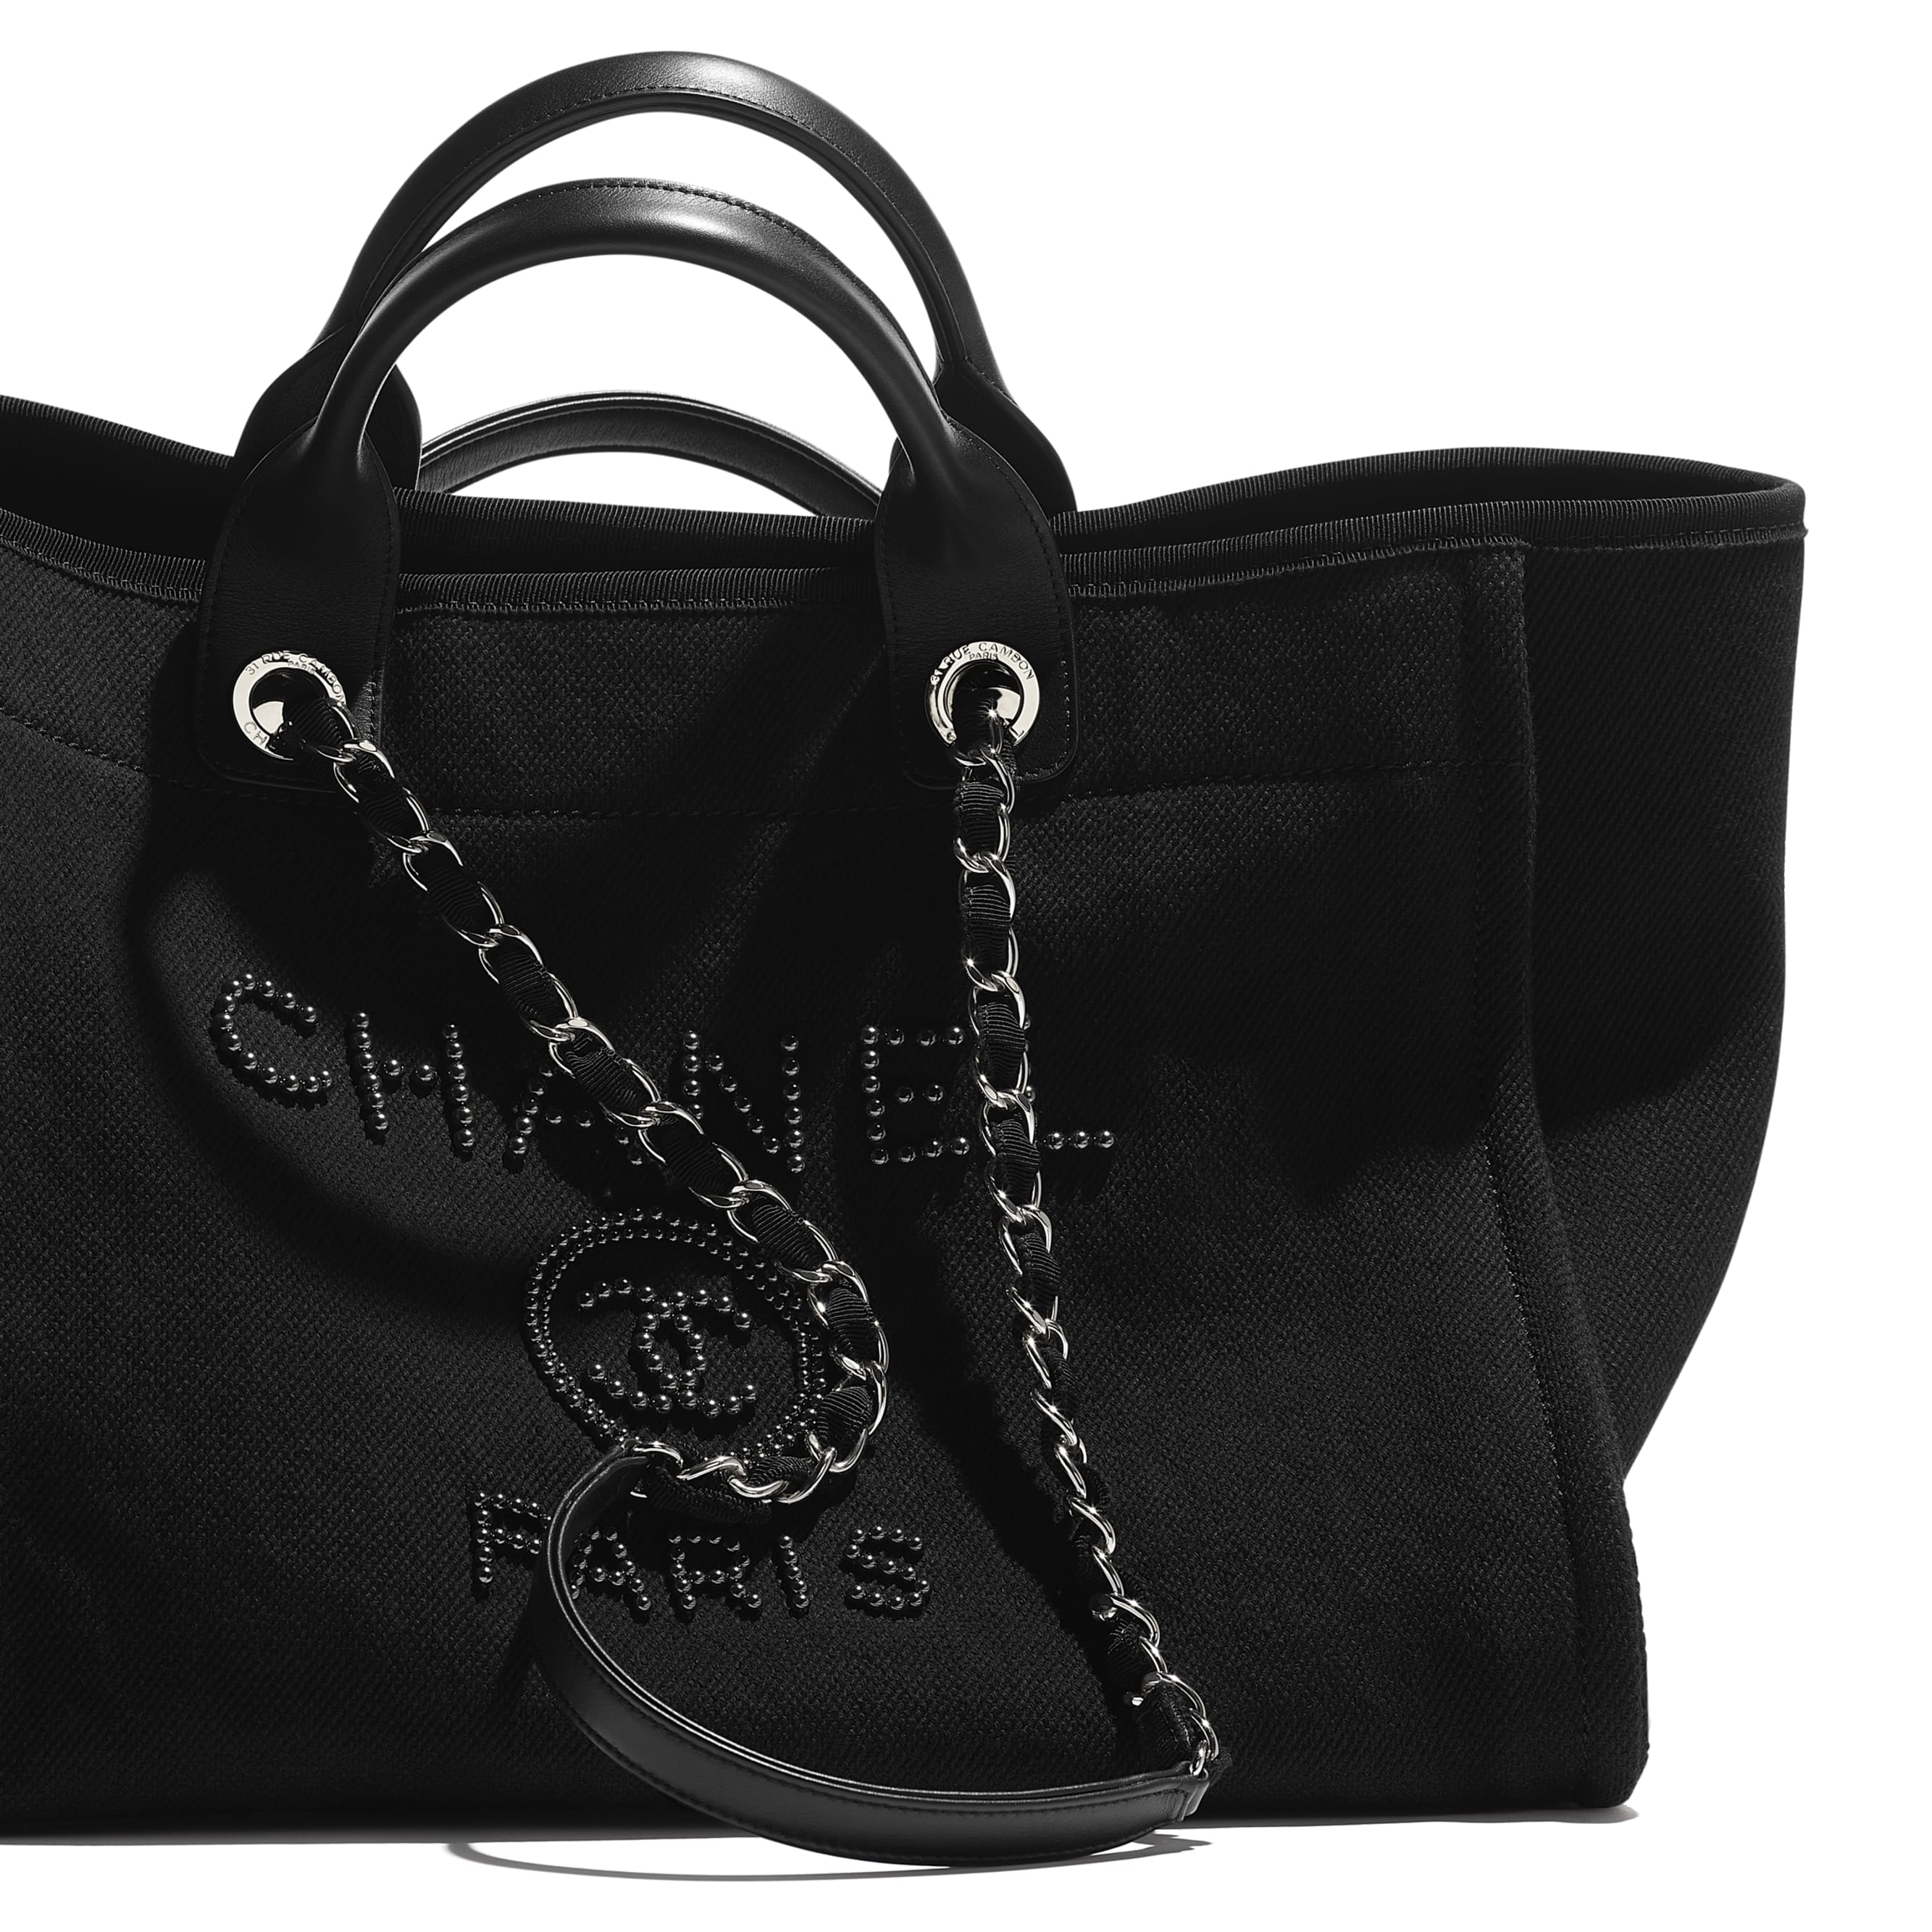 Shopping Bag - Black - Mixed Fibers, Imitation Pearls, Silver-Tone Metal - CHANEL - Extra view - see standard sized version